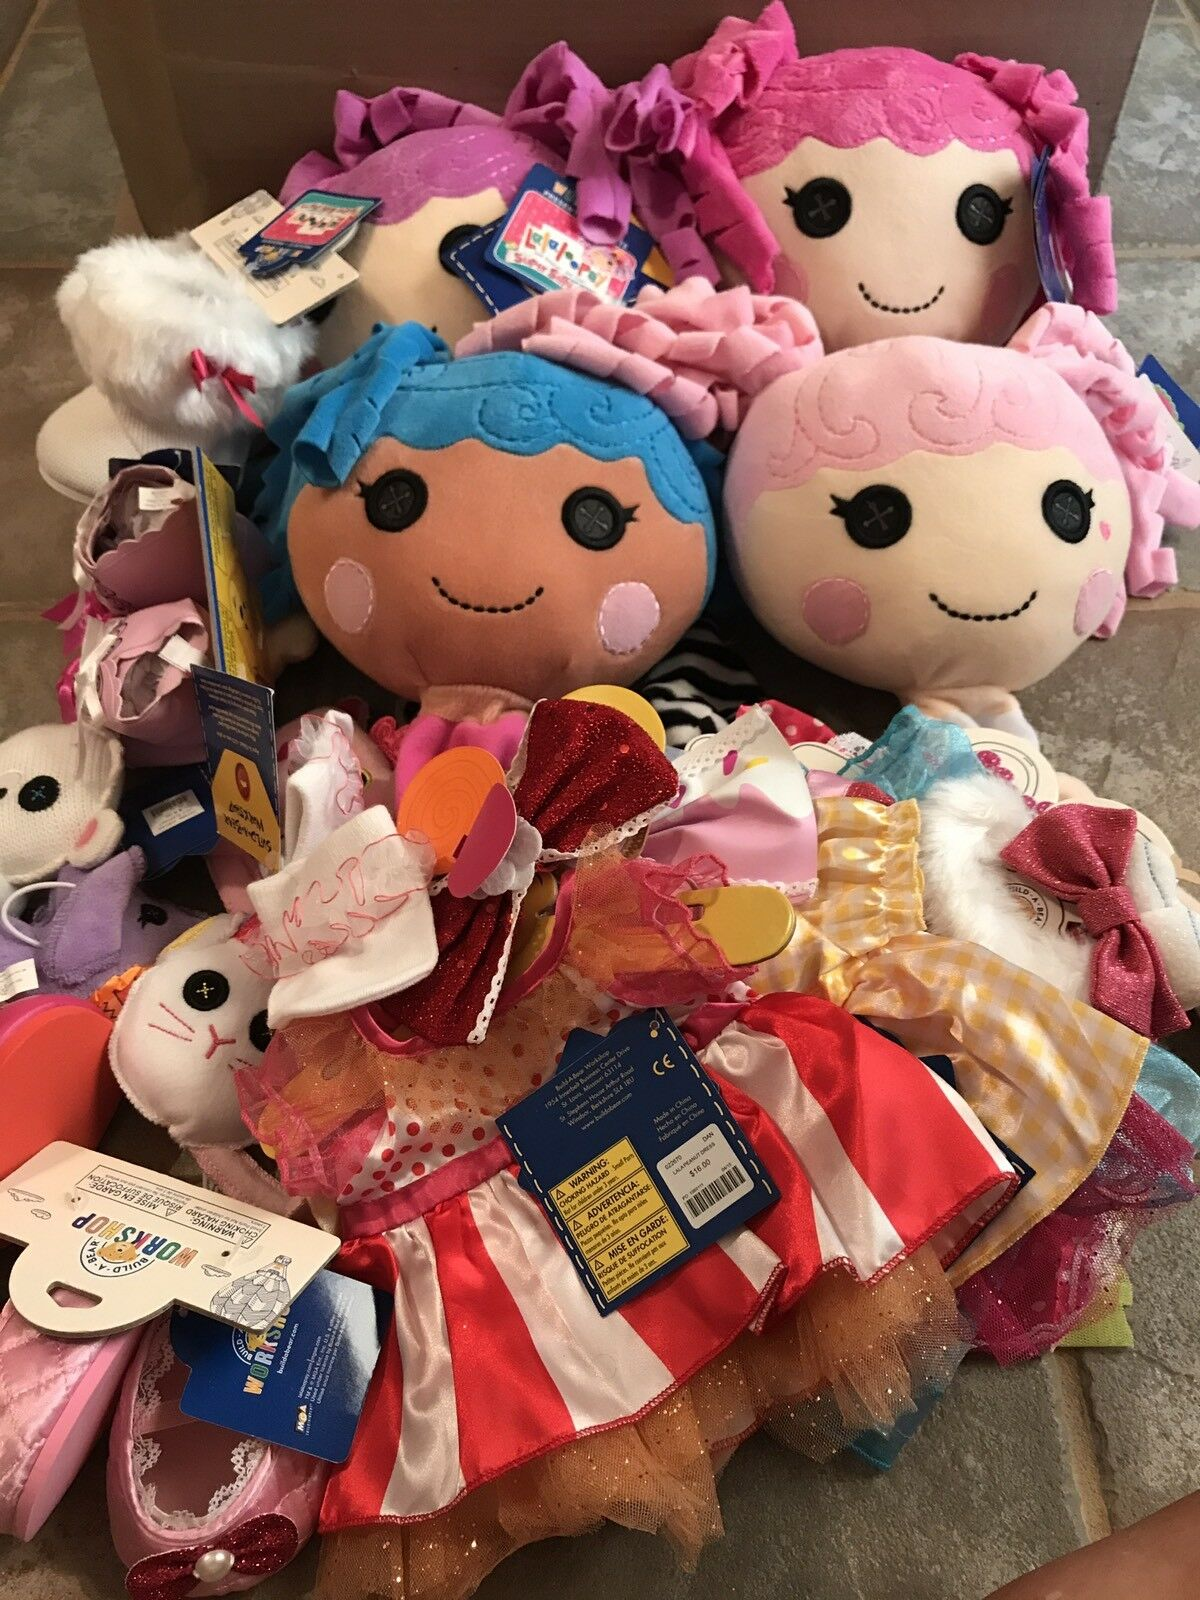 Build a Bear Lalaloopsy Dolls Set Of All 4 Full Size Dolls With Outfits Pets NEW